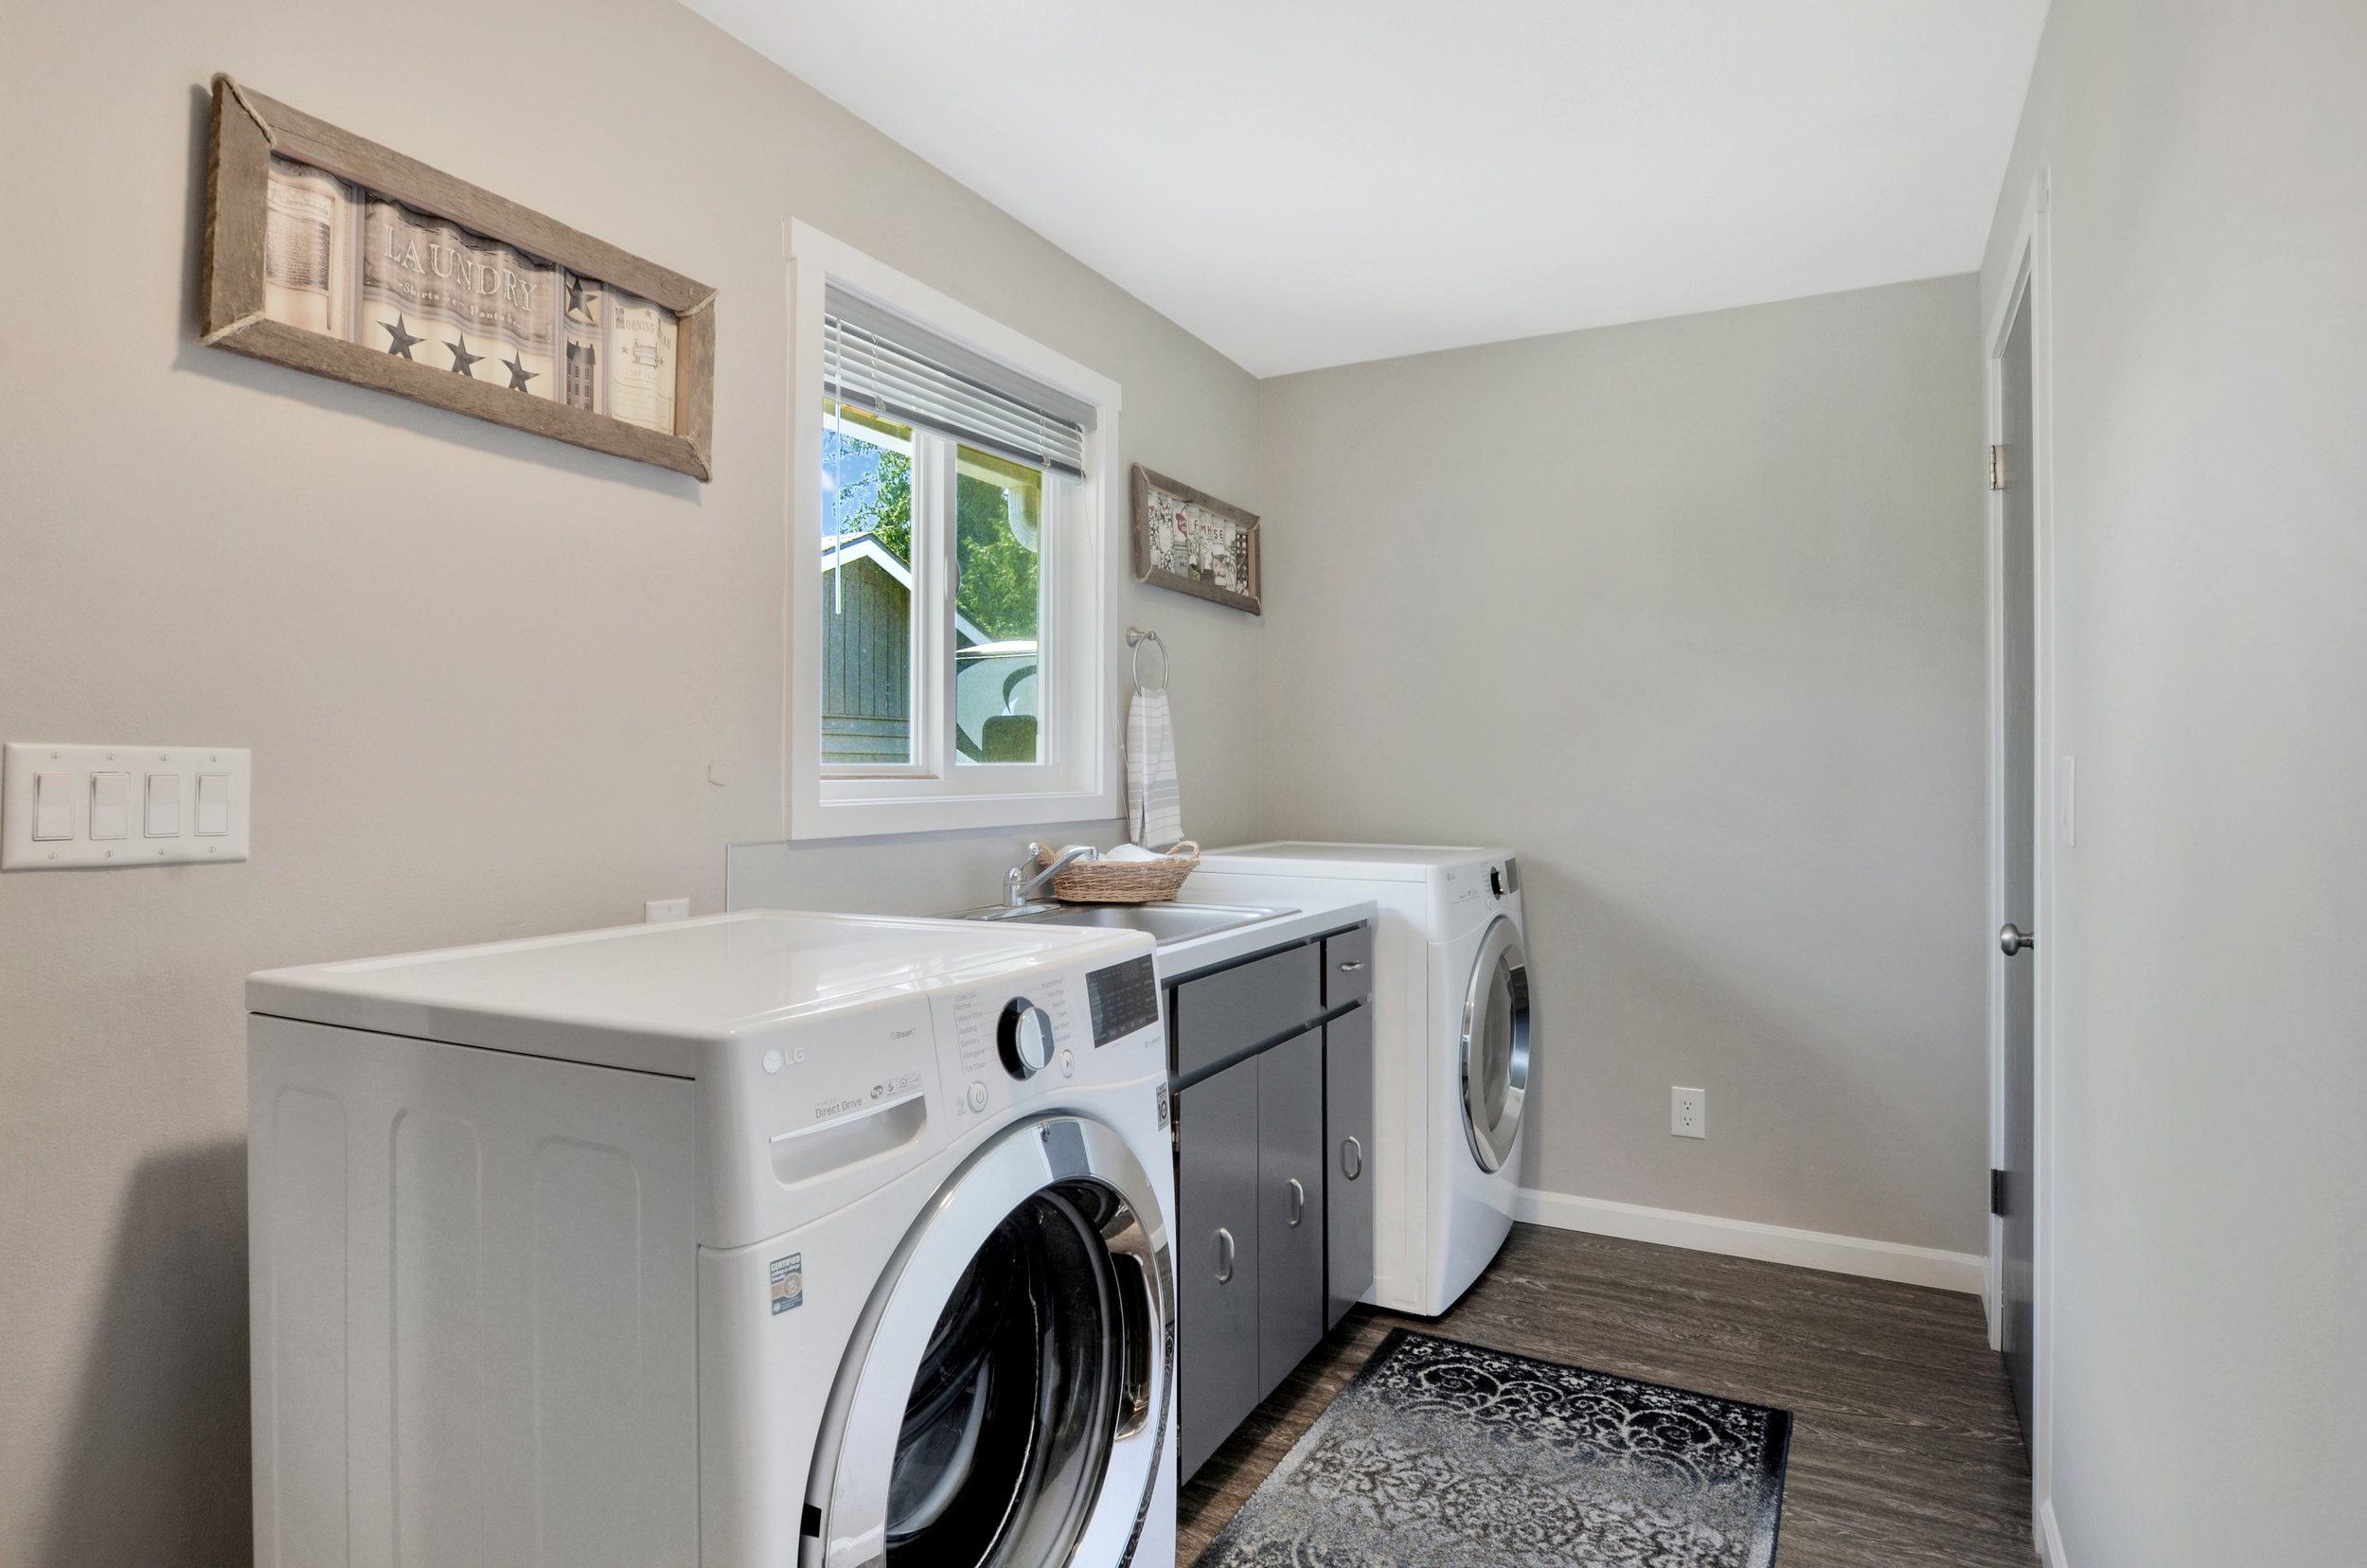 Last, but not least, for the interior is this laundry room with sink and cupboard storage as well as a door on the right to the 3rd bathroom. This bathroom features a stall shower and toilet, with sink just outside the door between the washer and dryer.